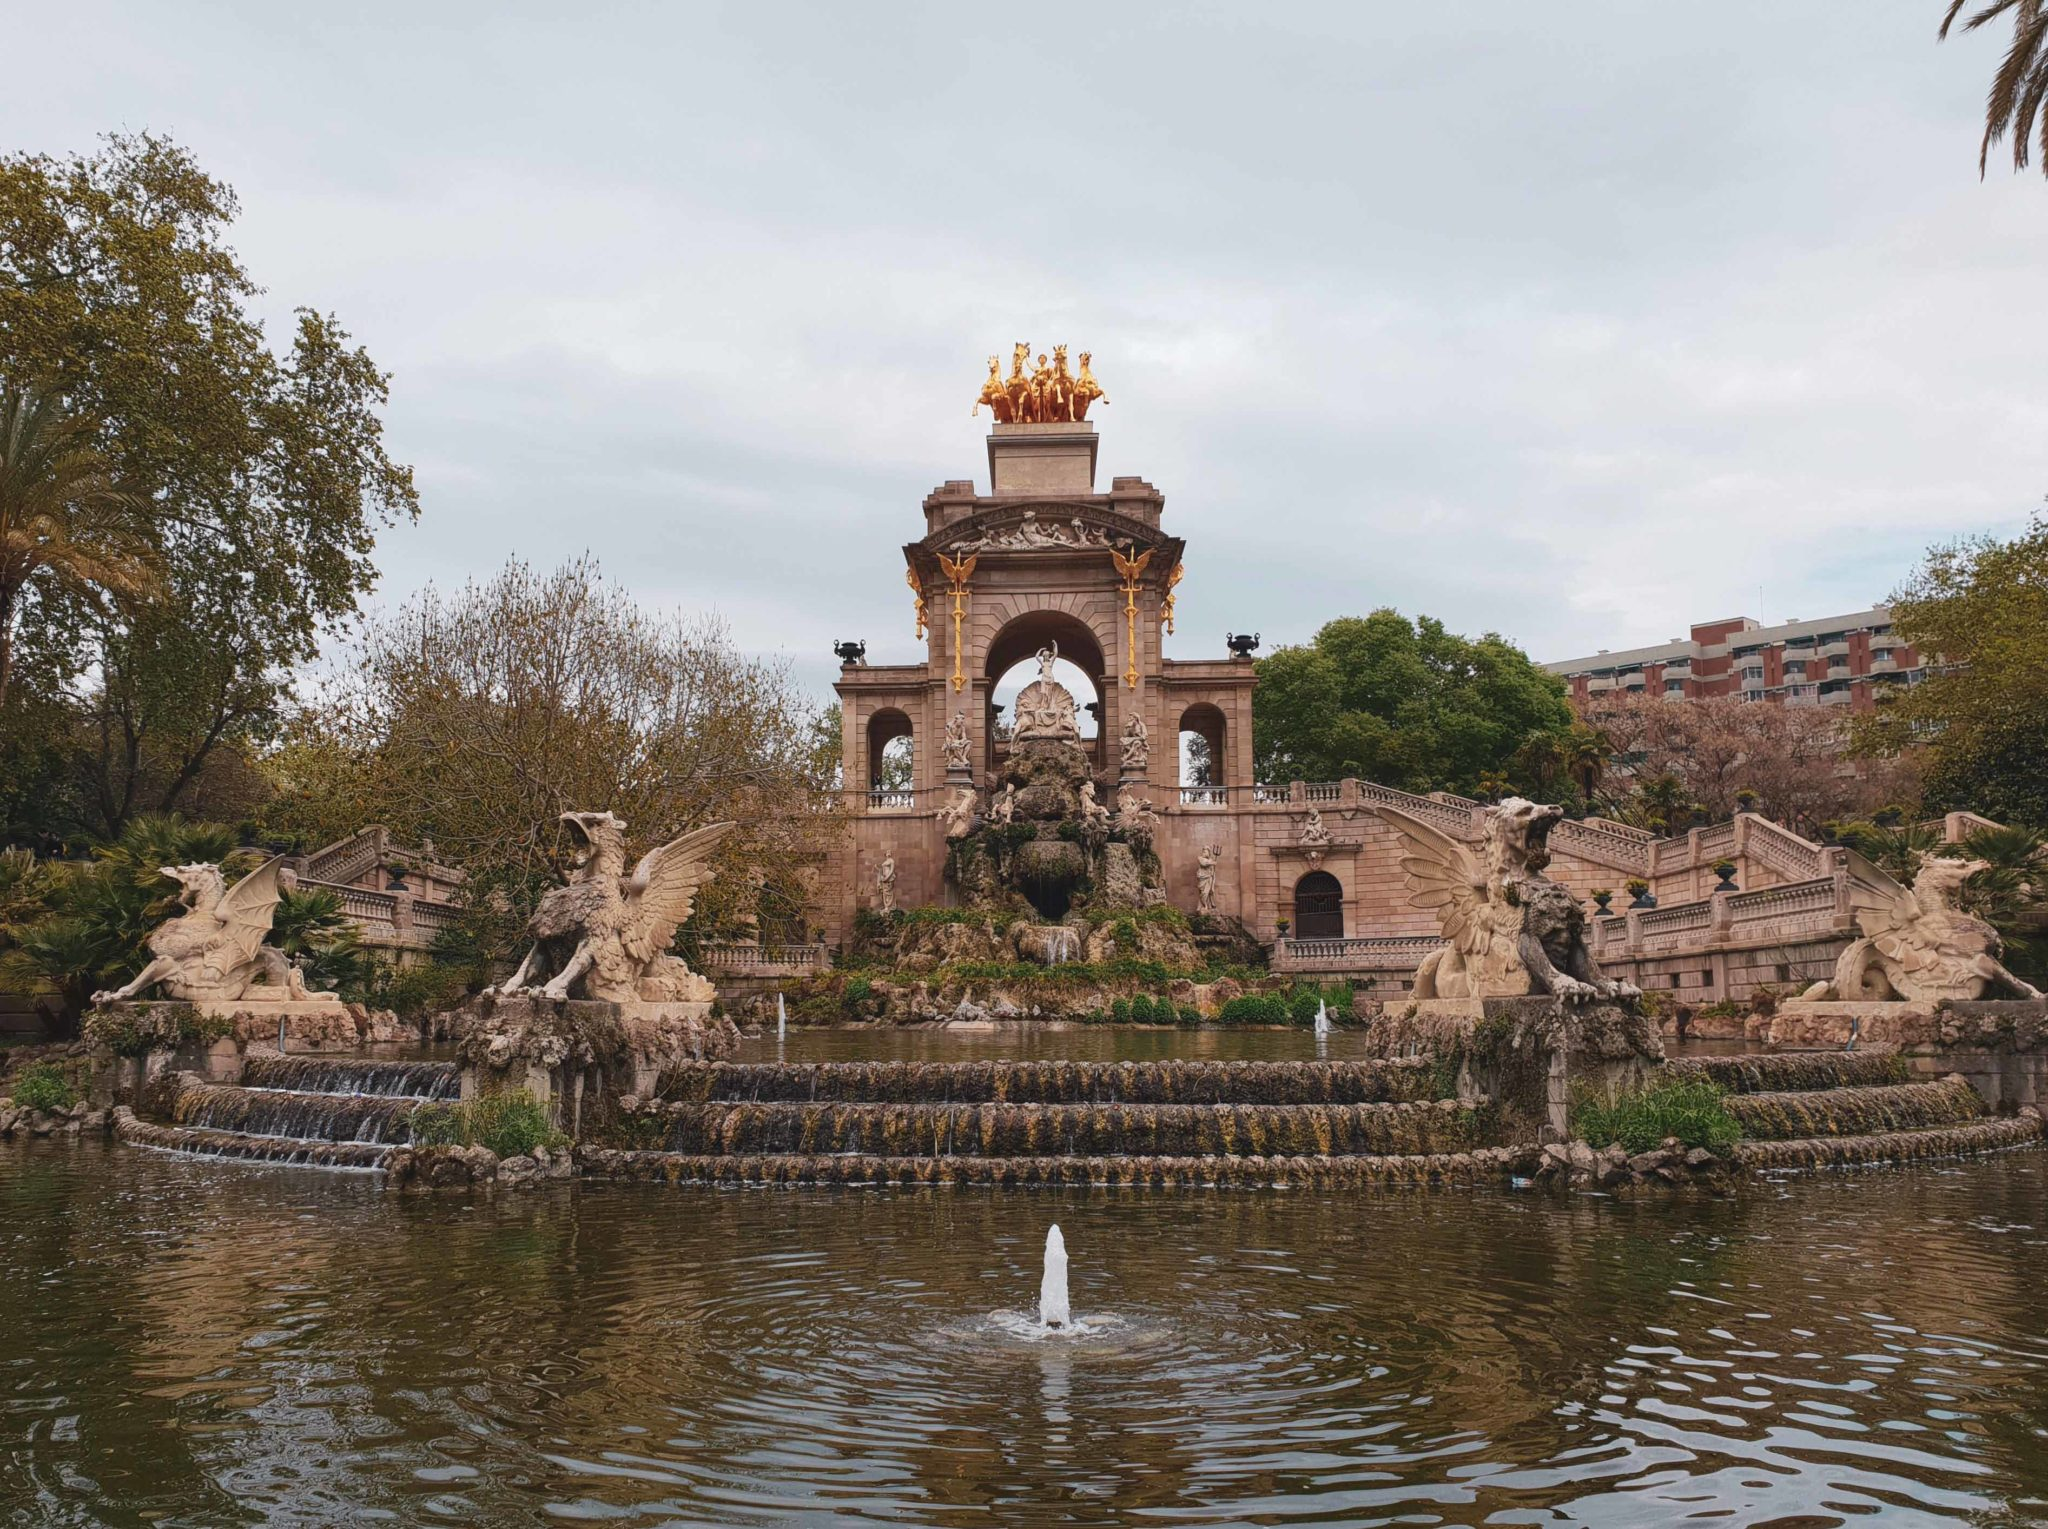 Barcelona travel guide by Michaella and Lina from Bulgarian lifestyle blog Quite a Looker / Park de la Cuitadella fountain